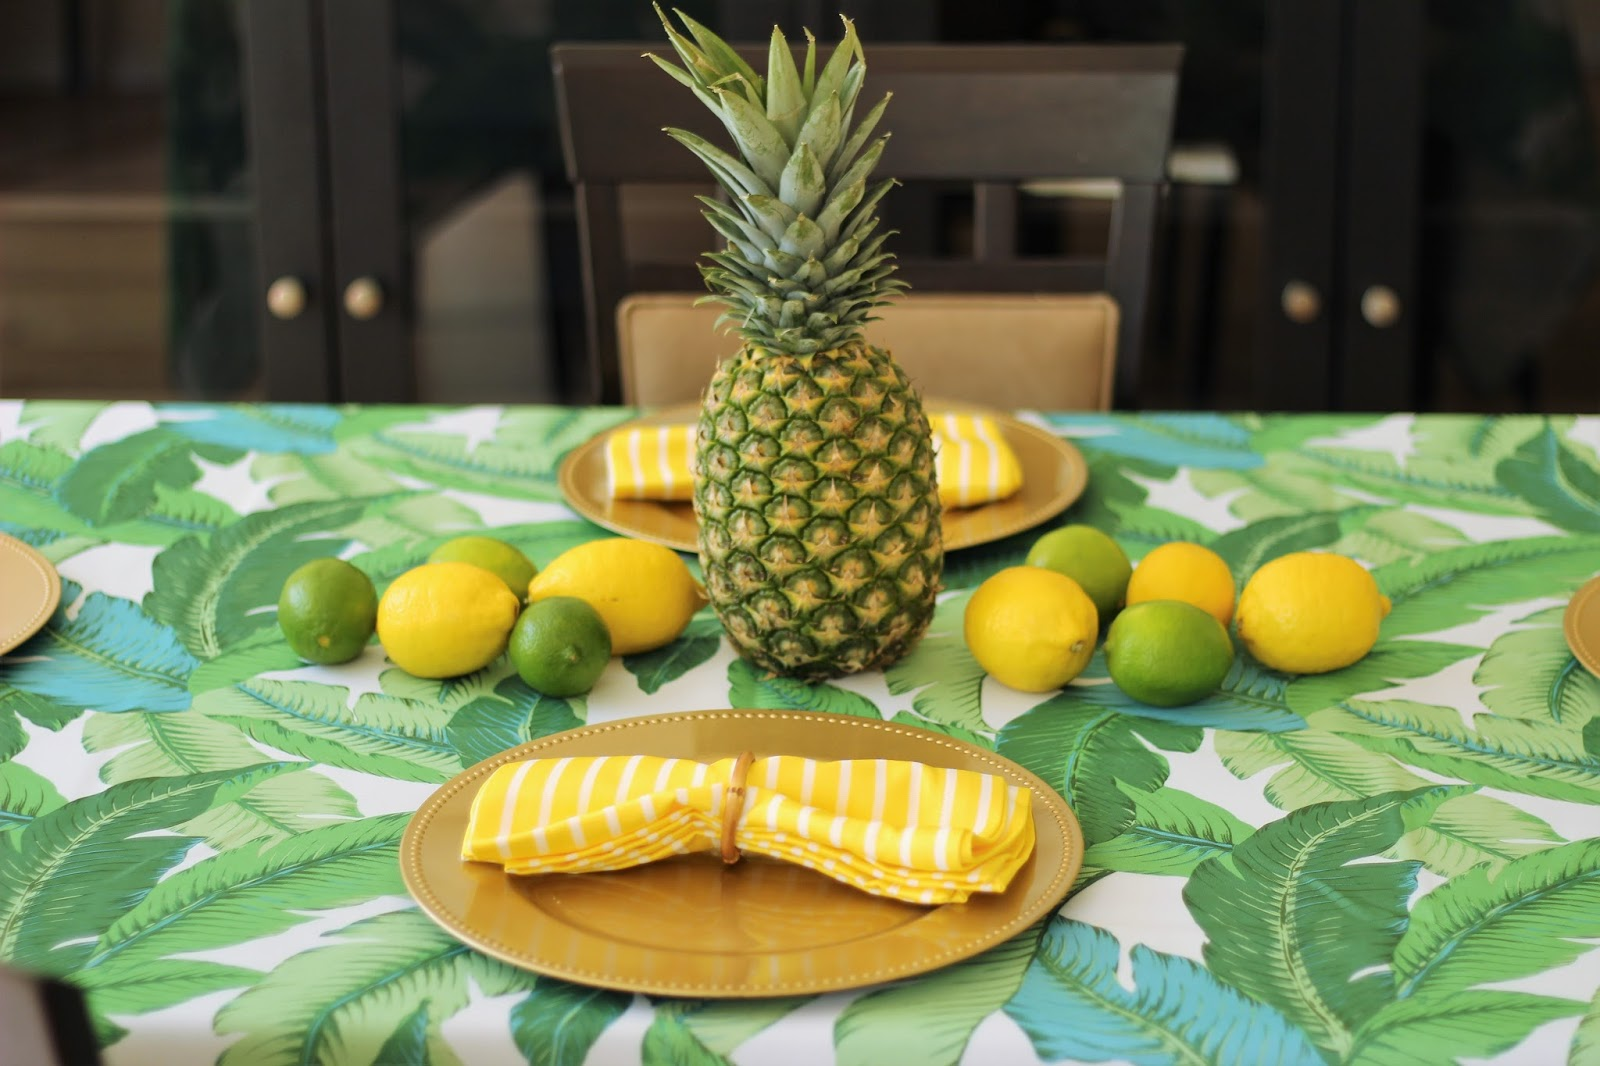 fruit centerpiece for a tropical table setting